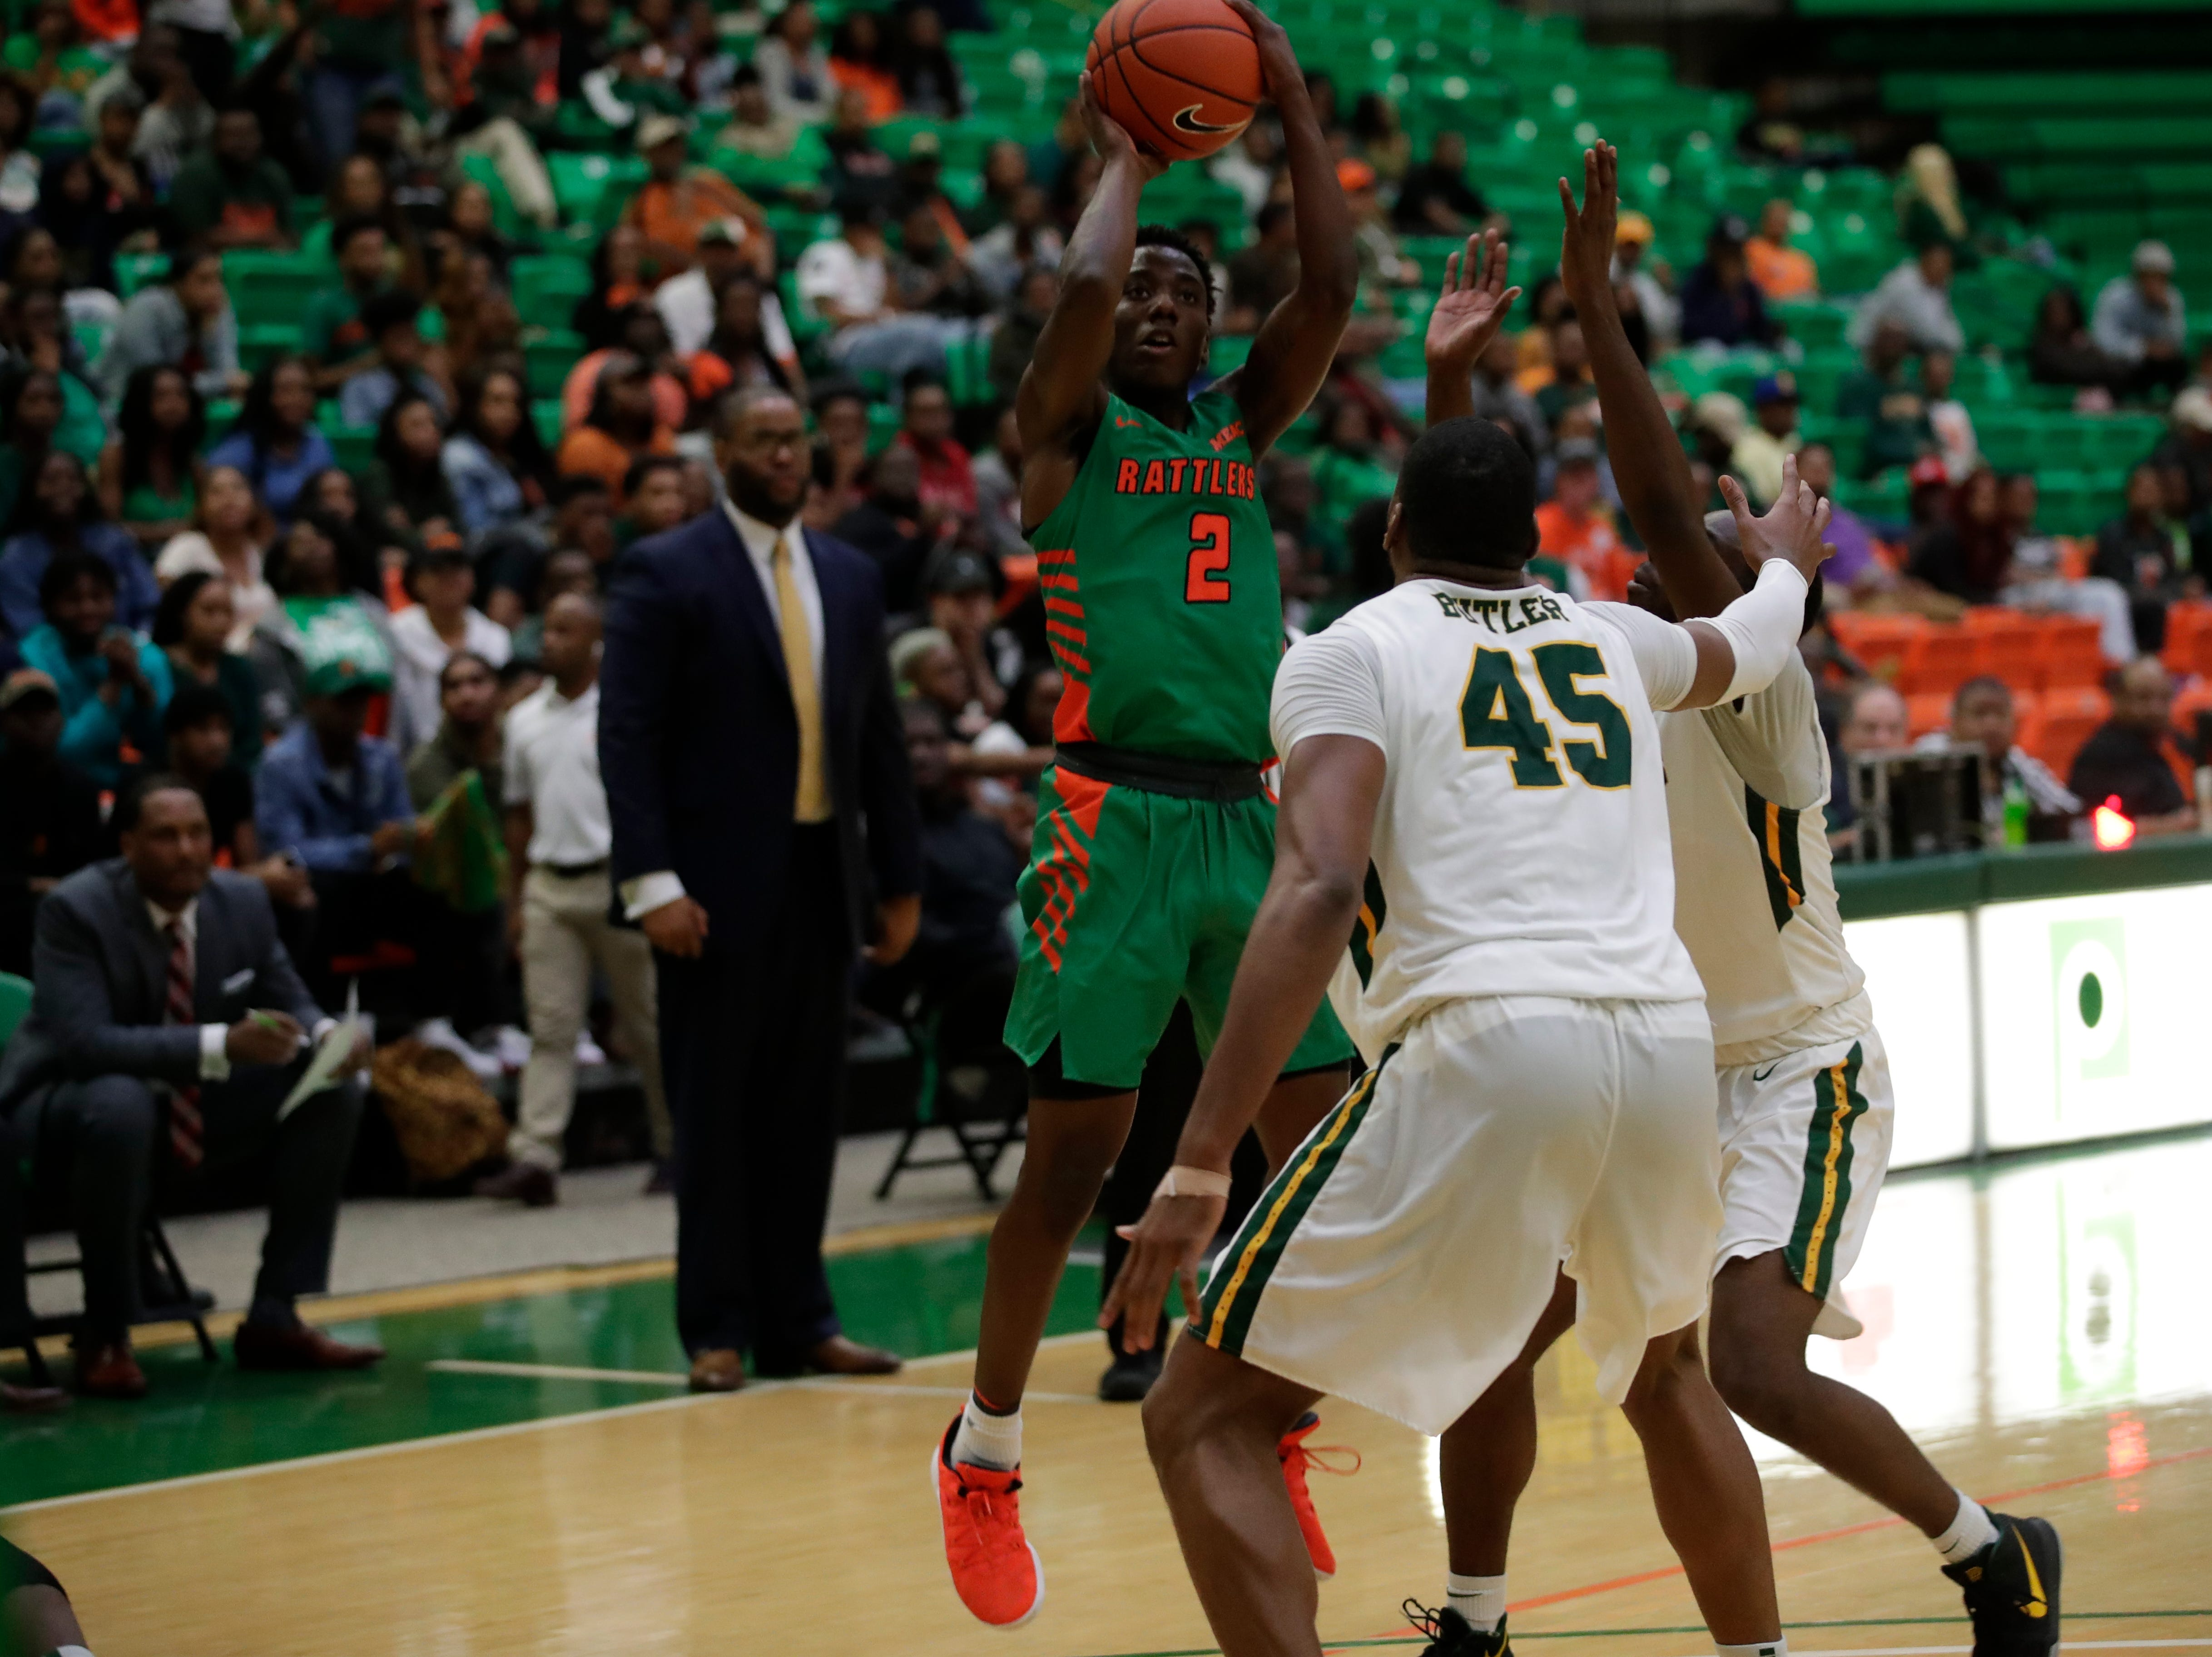 Florida A&M Rattlers guard Kamron Reaves (2) shoots during a game between FAMU and Norfolk State at the Alfred Lawson Jr. Multipurpose Center Monday, Feb. 11, 2019.